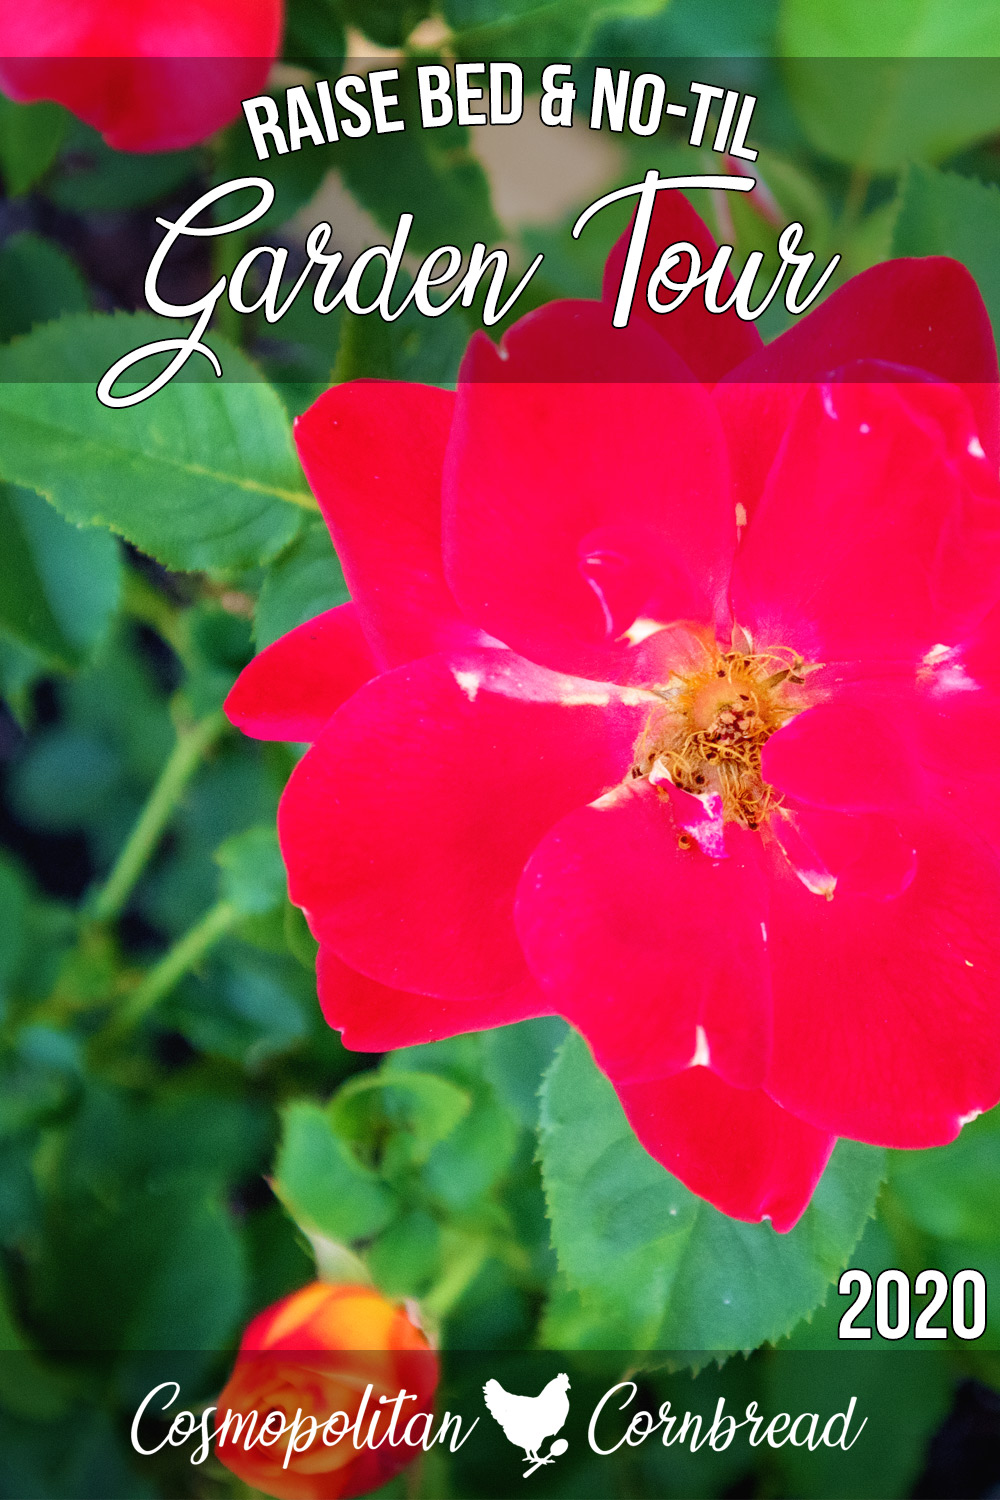 Join me for the week 7 garden tour in northern Alabama, garden zone 7b.